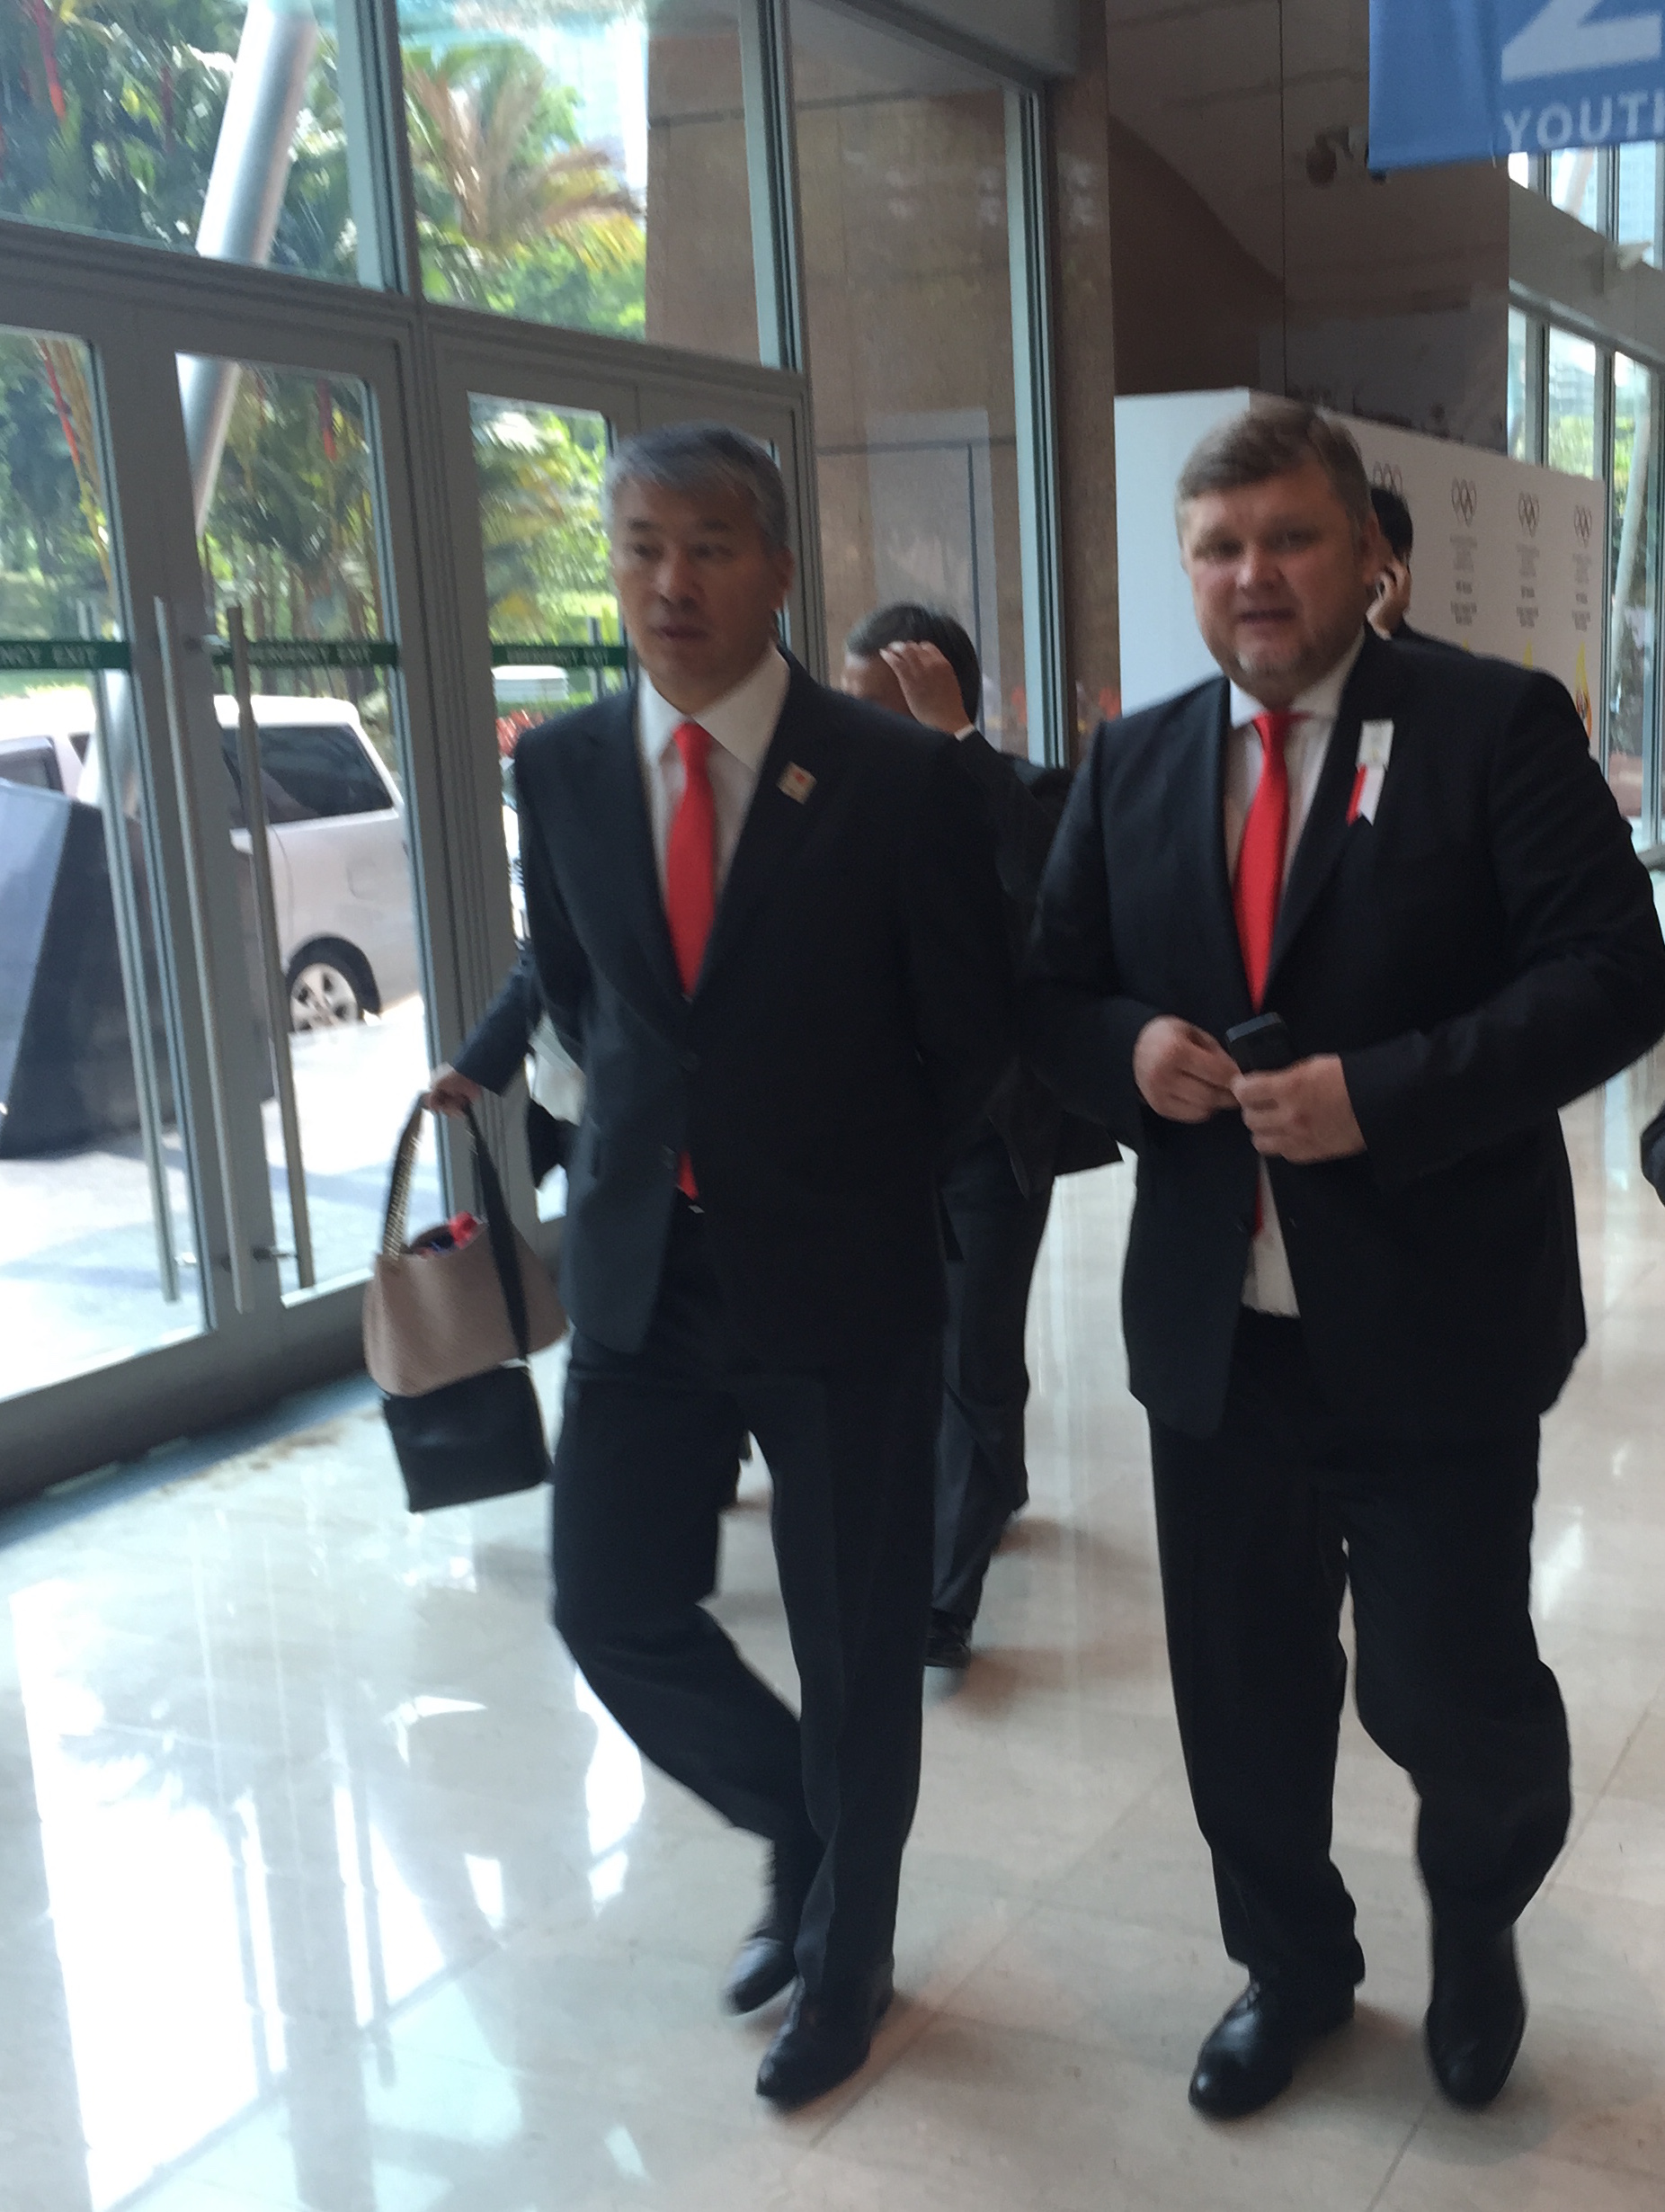 Almaty bid leader Andrey Kryukov, right, just moments after the presentation